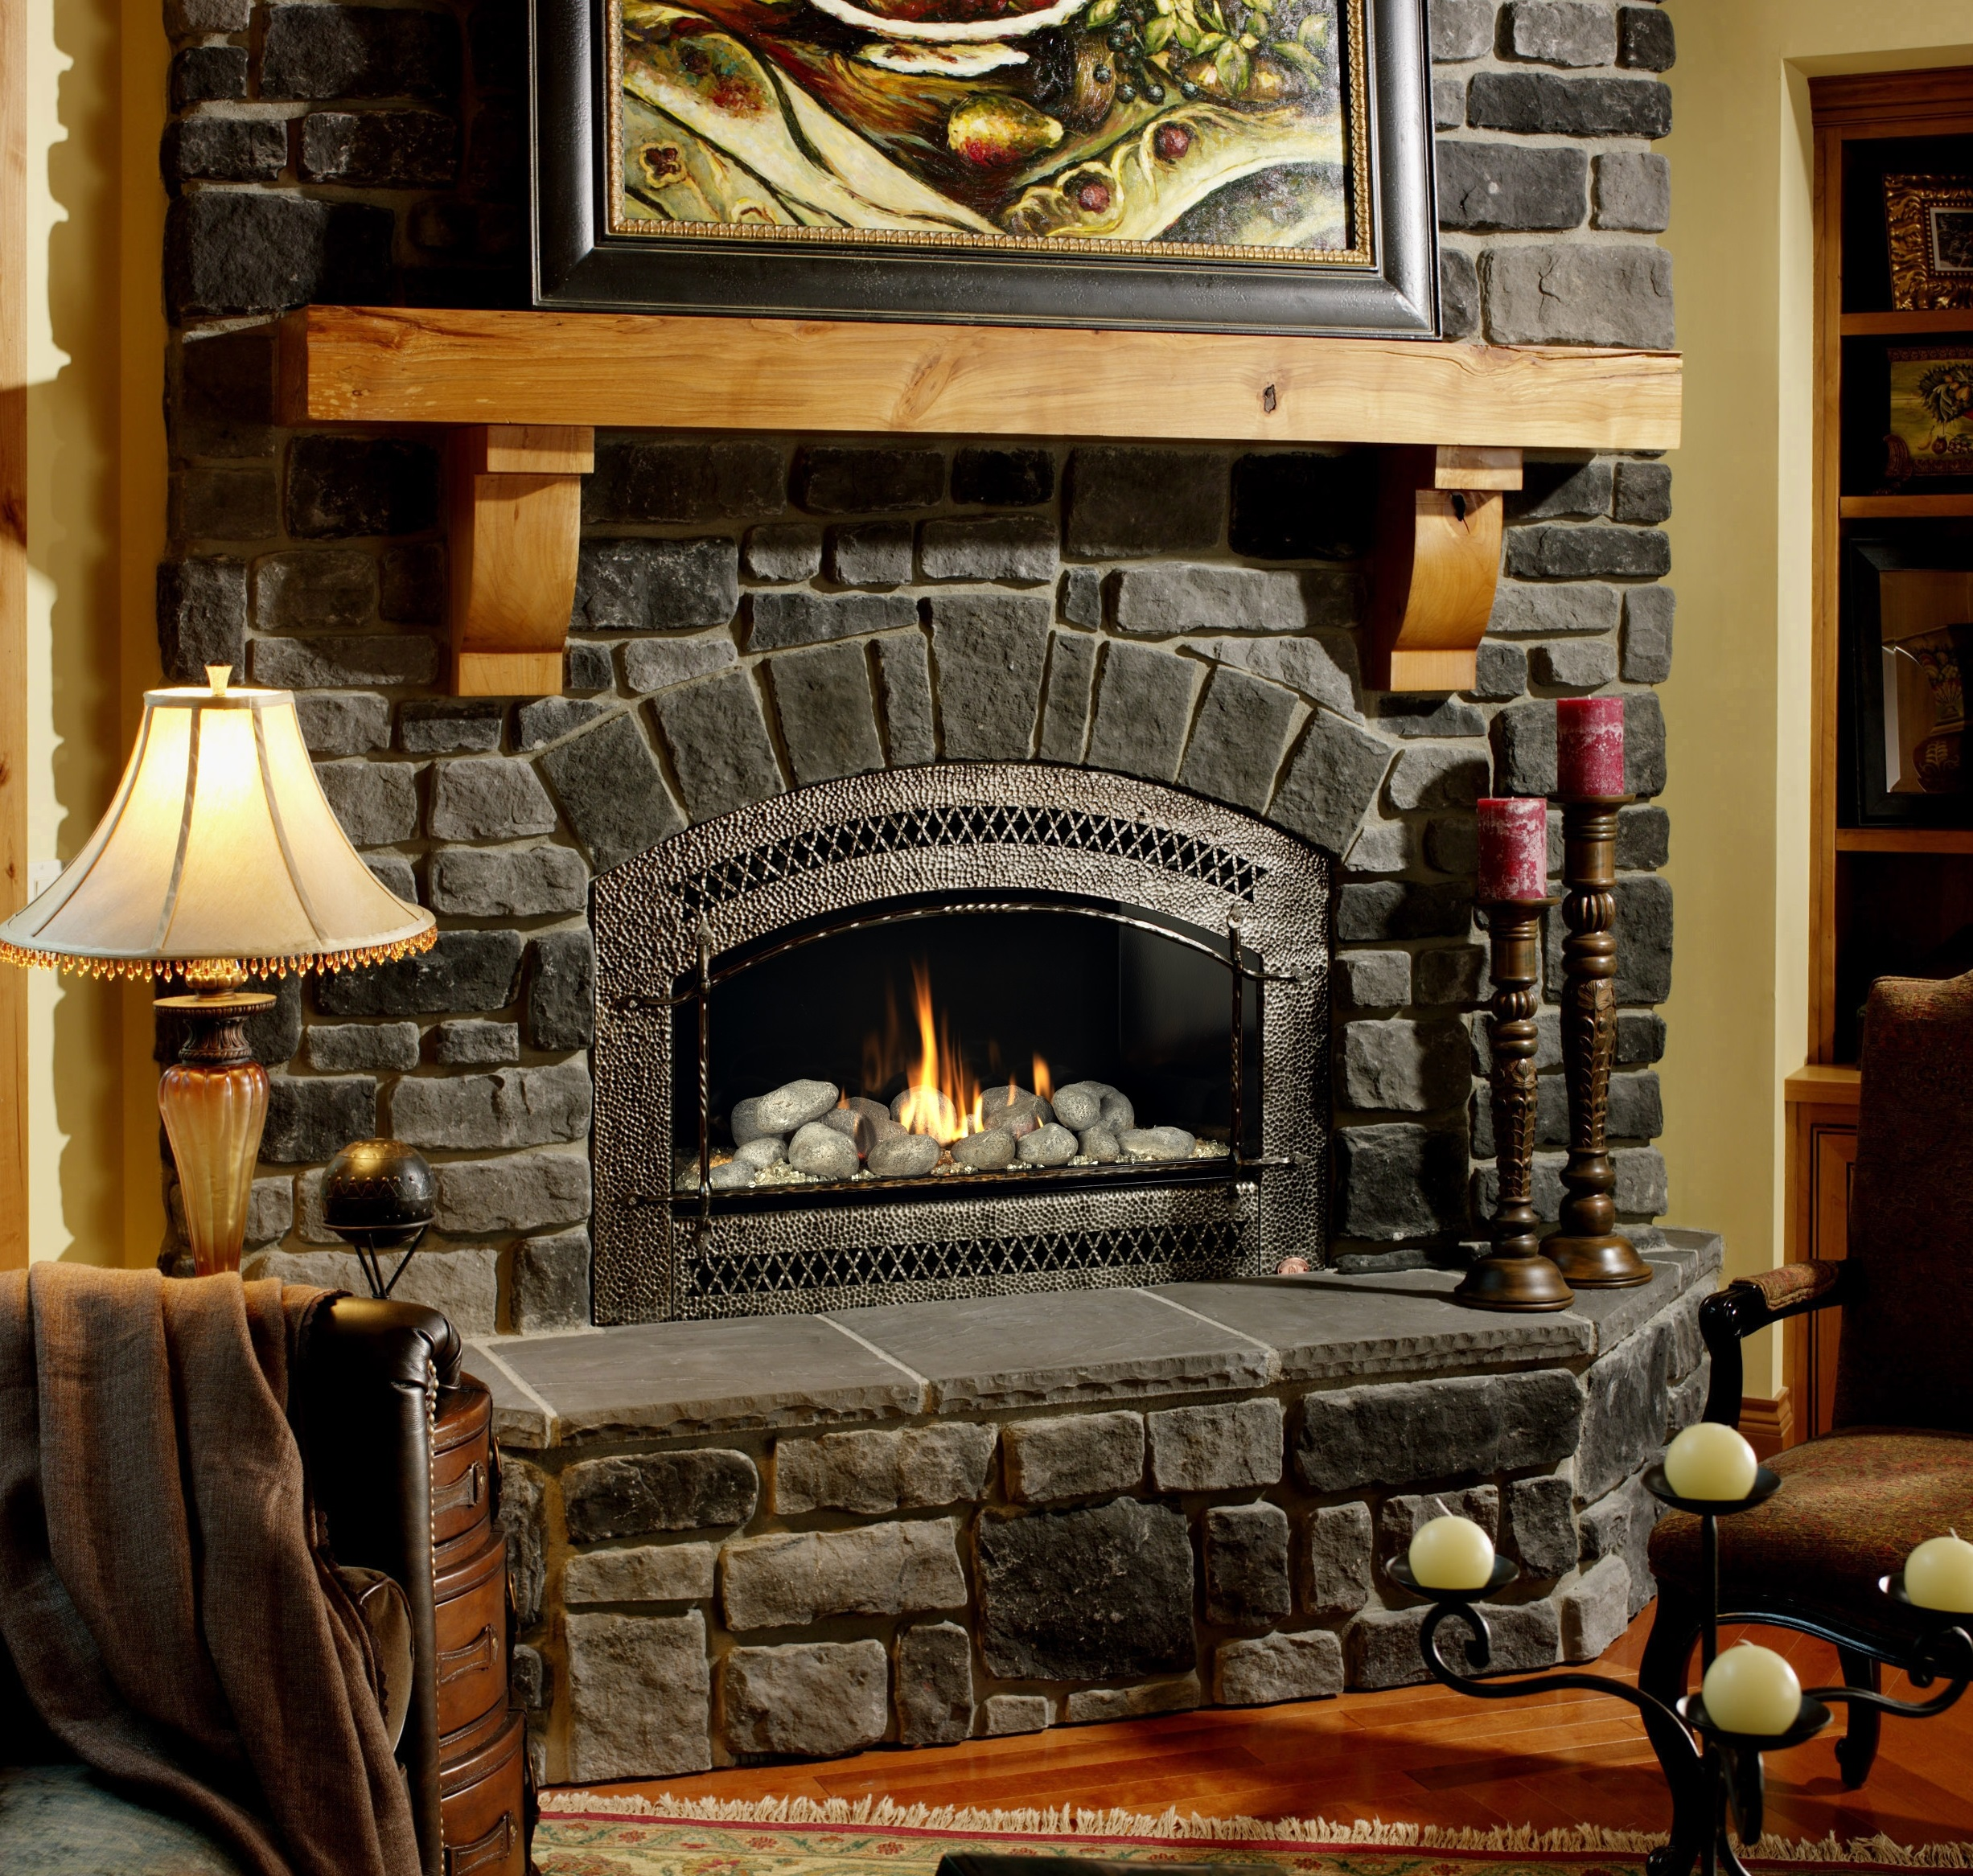 Excellent Gas Fireplace Repair Tacoma Fireplace Ideas Download Free Architecture Designs Scobabritishbridgeorg